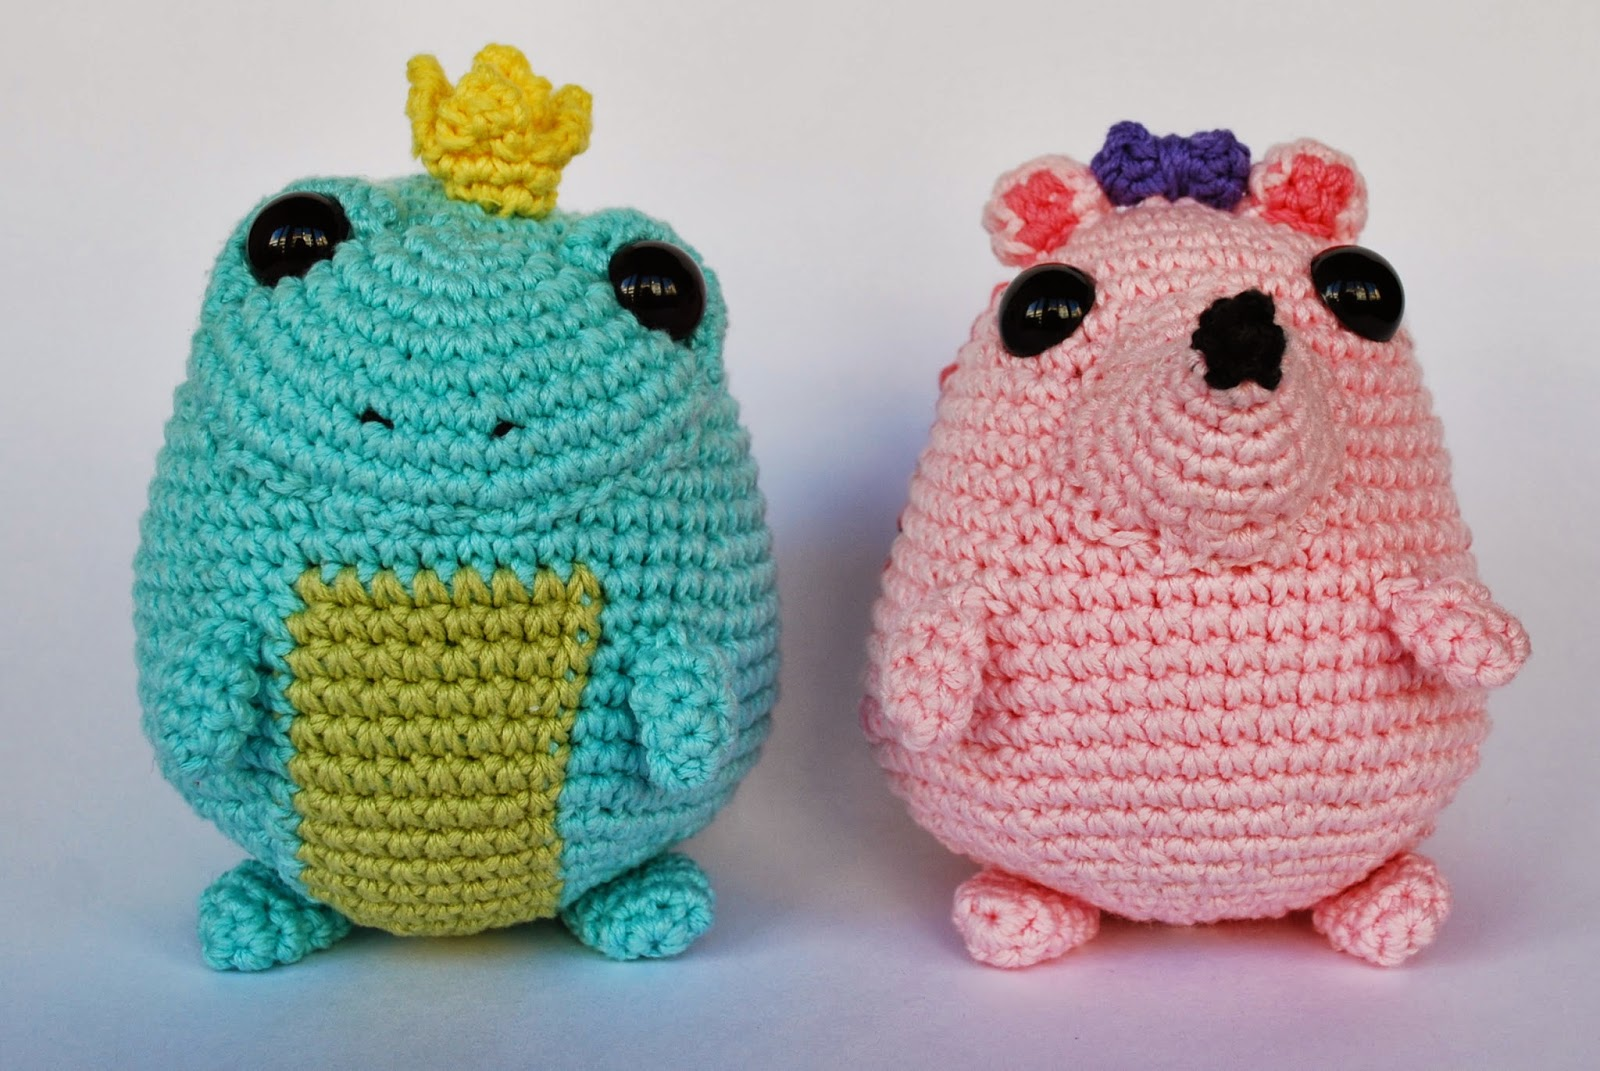 amigurumi hedgehog and toad